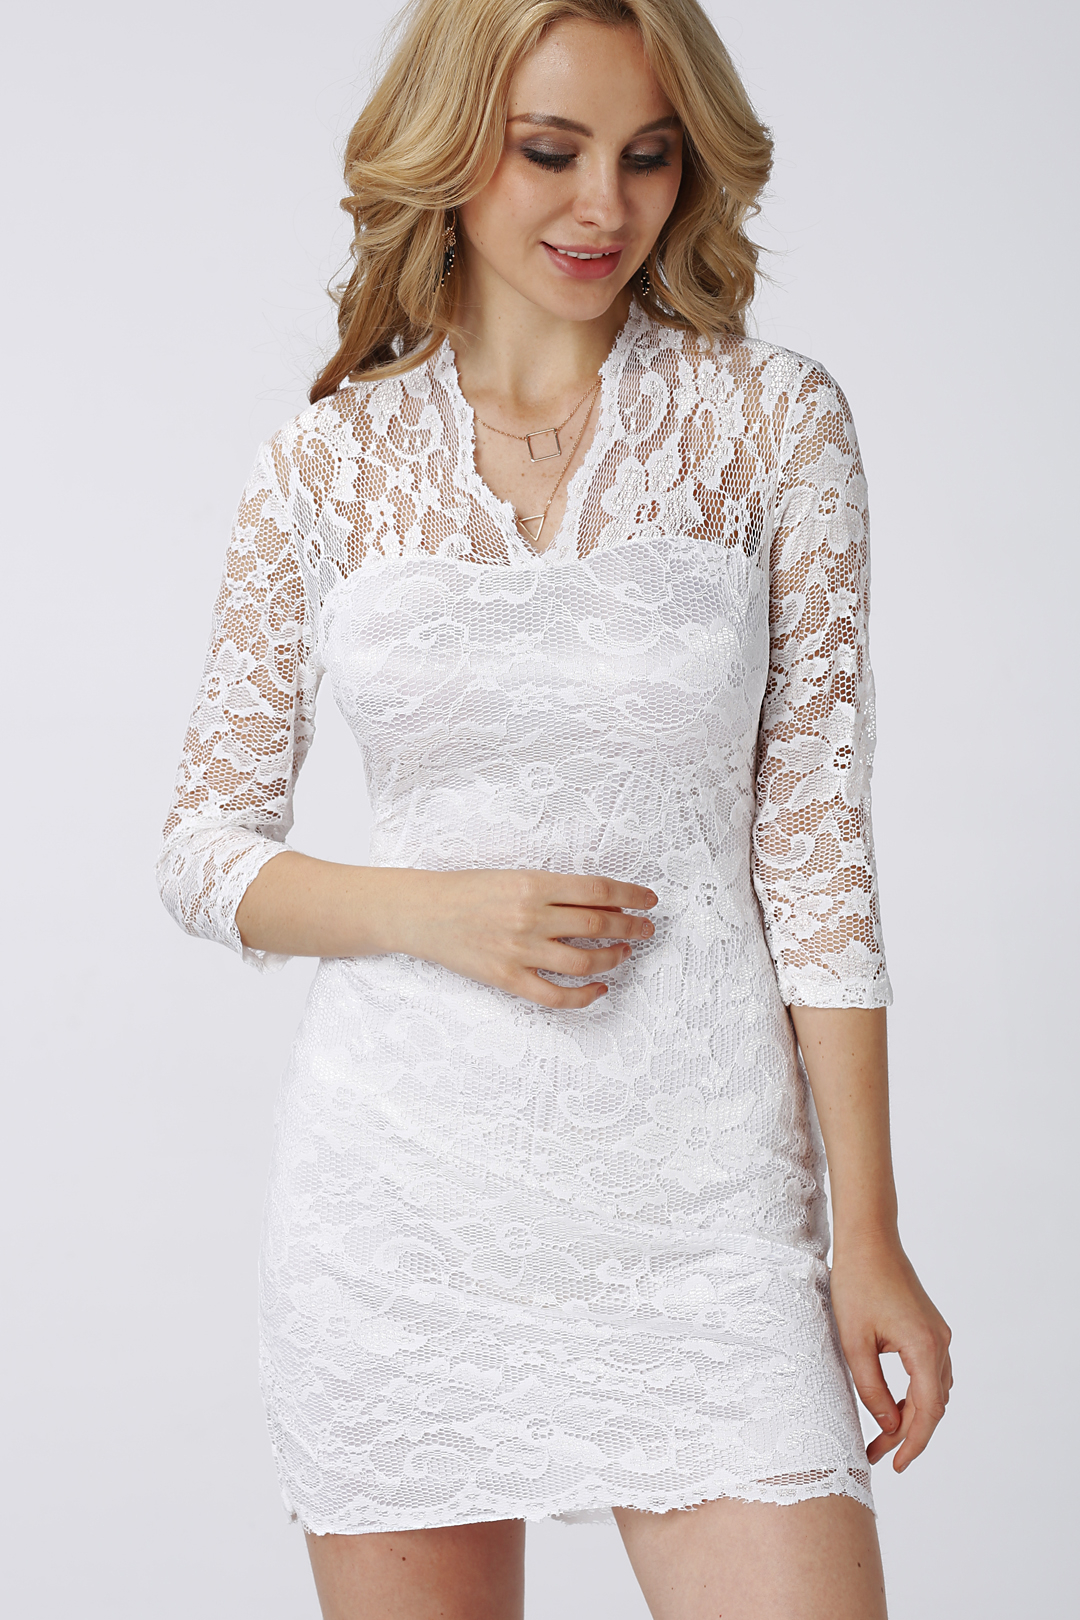 Image of 3/4 Length Sleeves Lace Dress in White